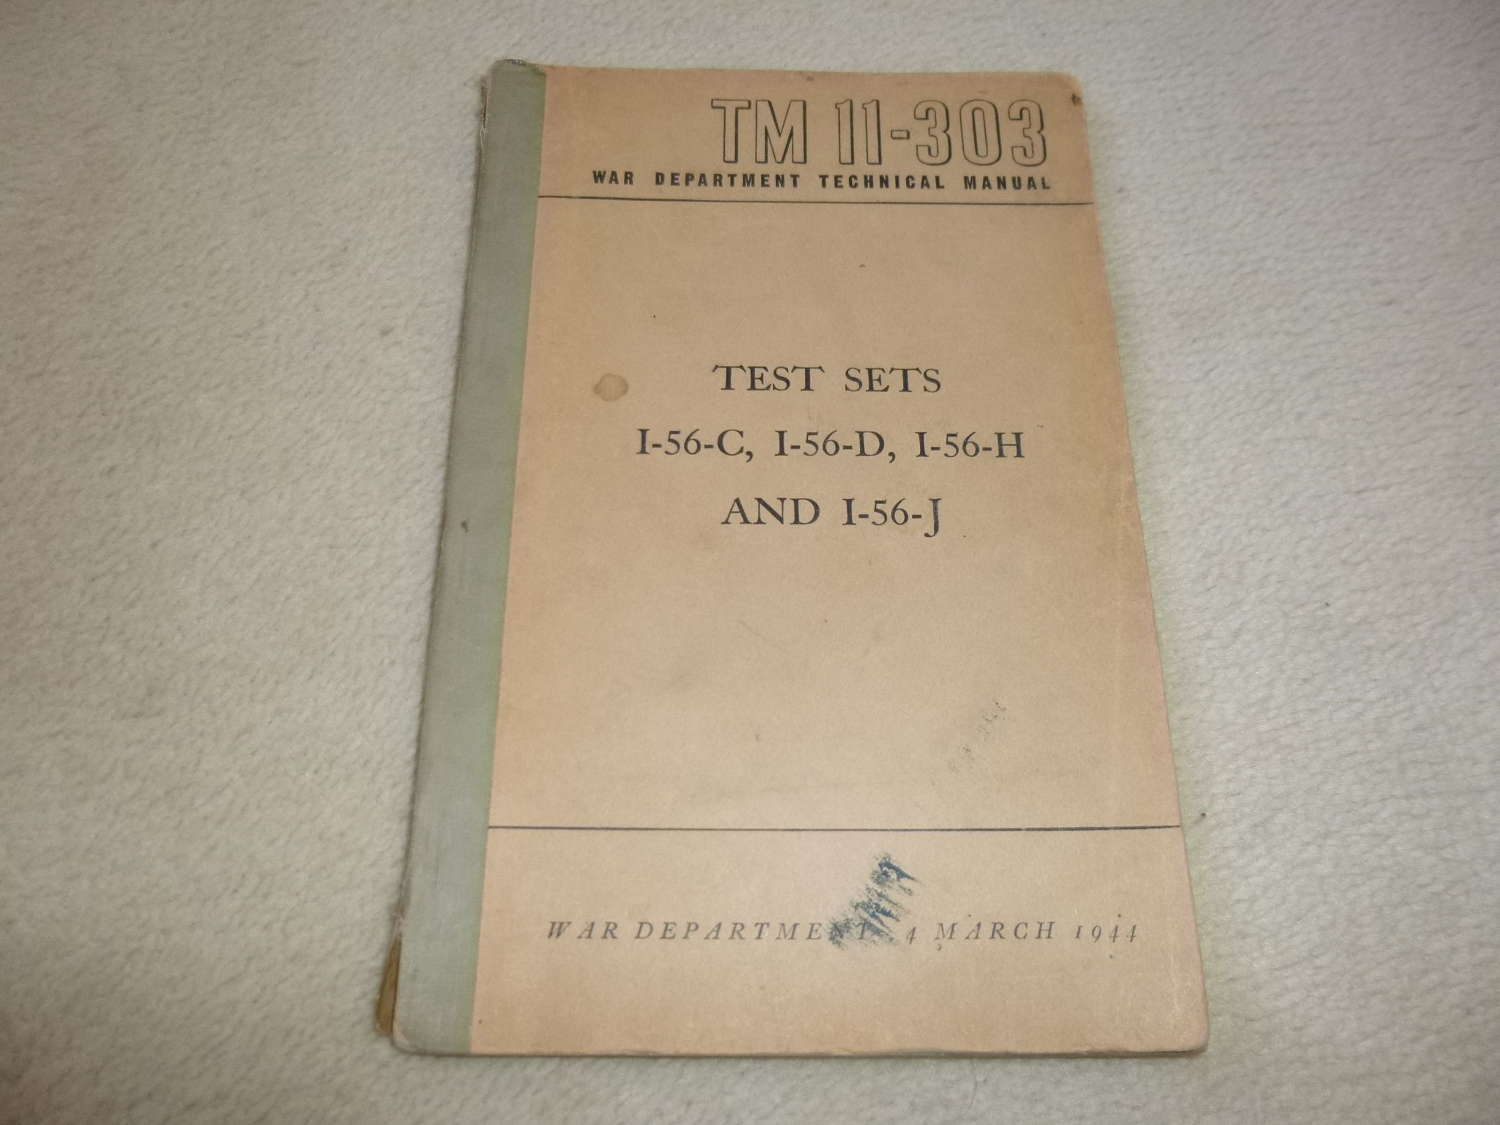 US Army TM11-303 Test Set I-56 Manual